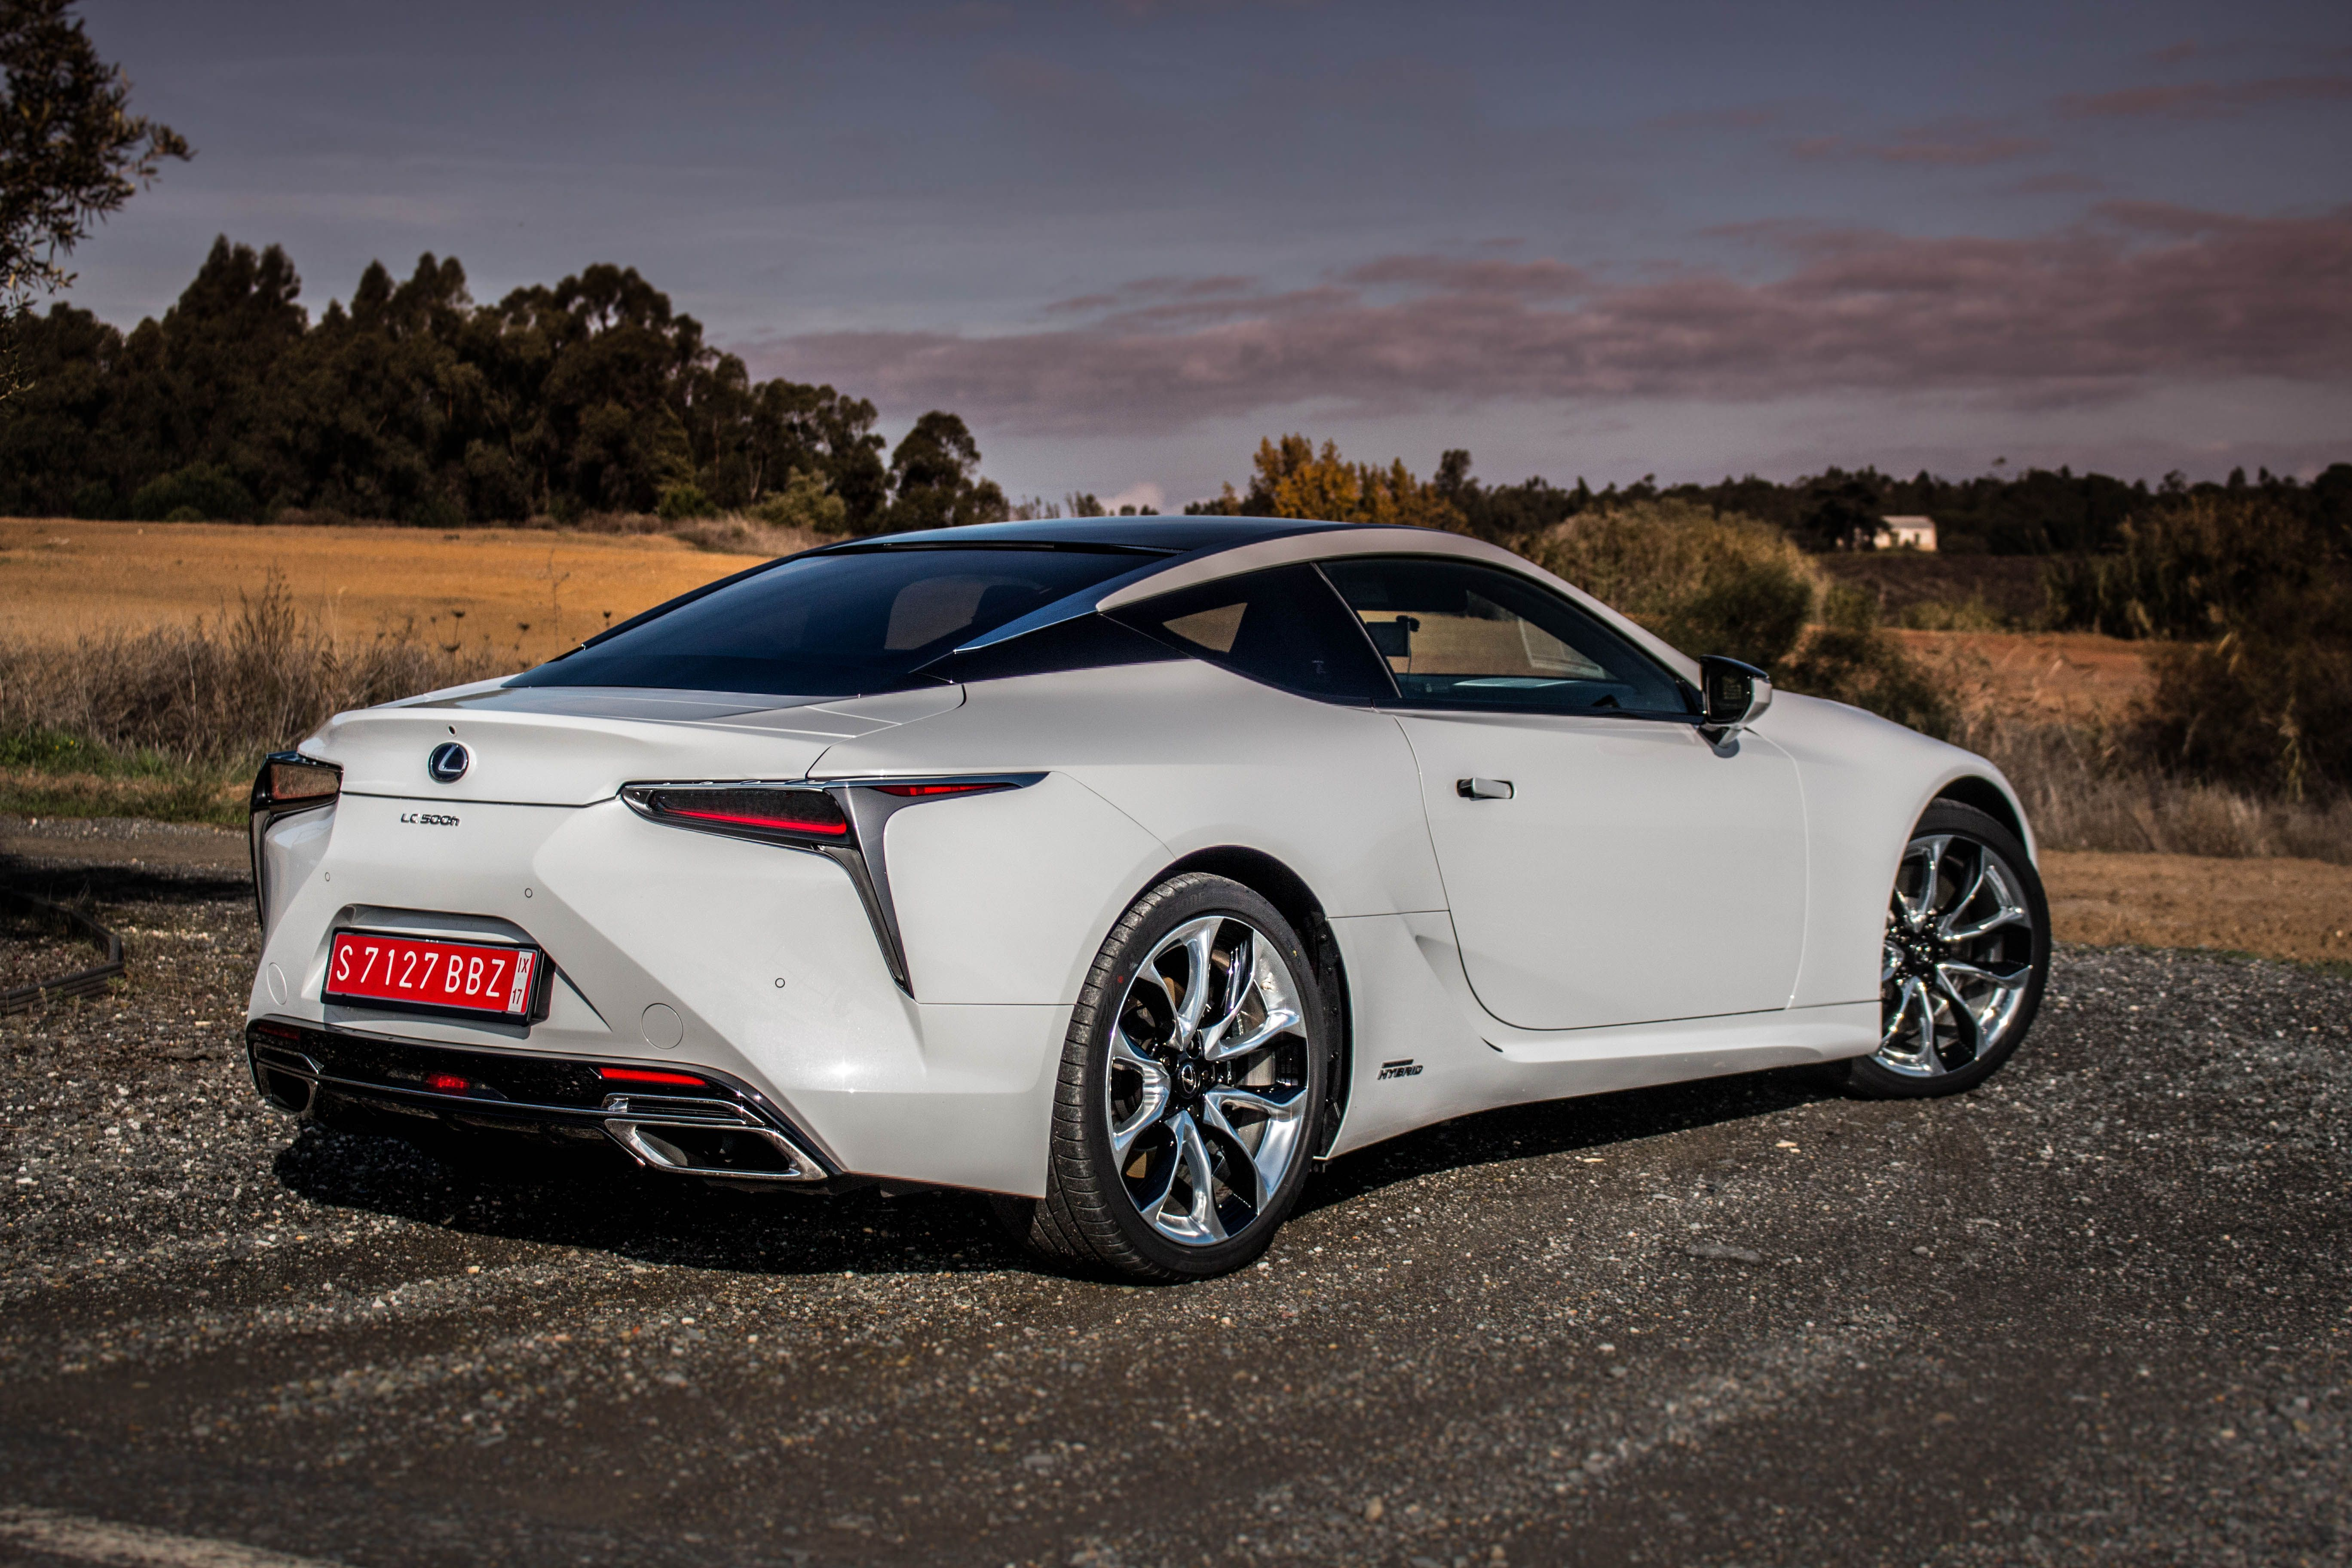 2018 Lexus Lc 500 New Flagship Coupe Is A Looker And Bona Fide Driver S Car Roadshow